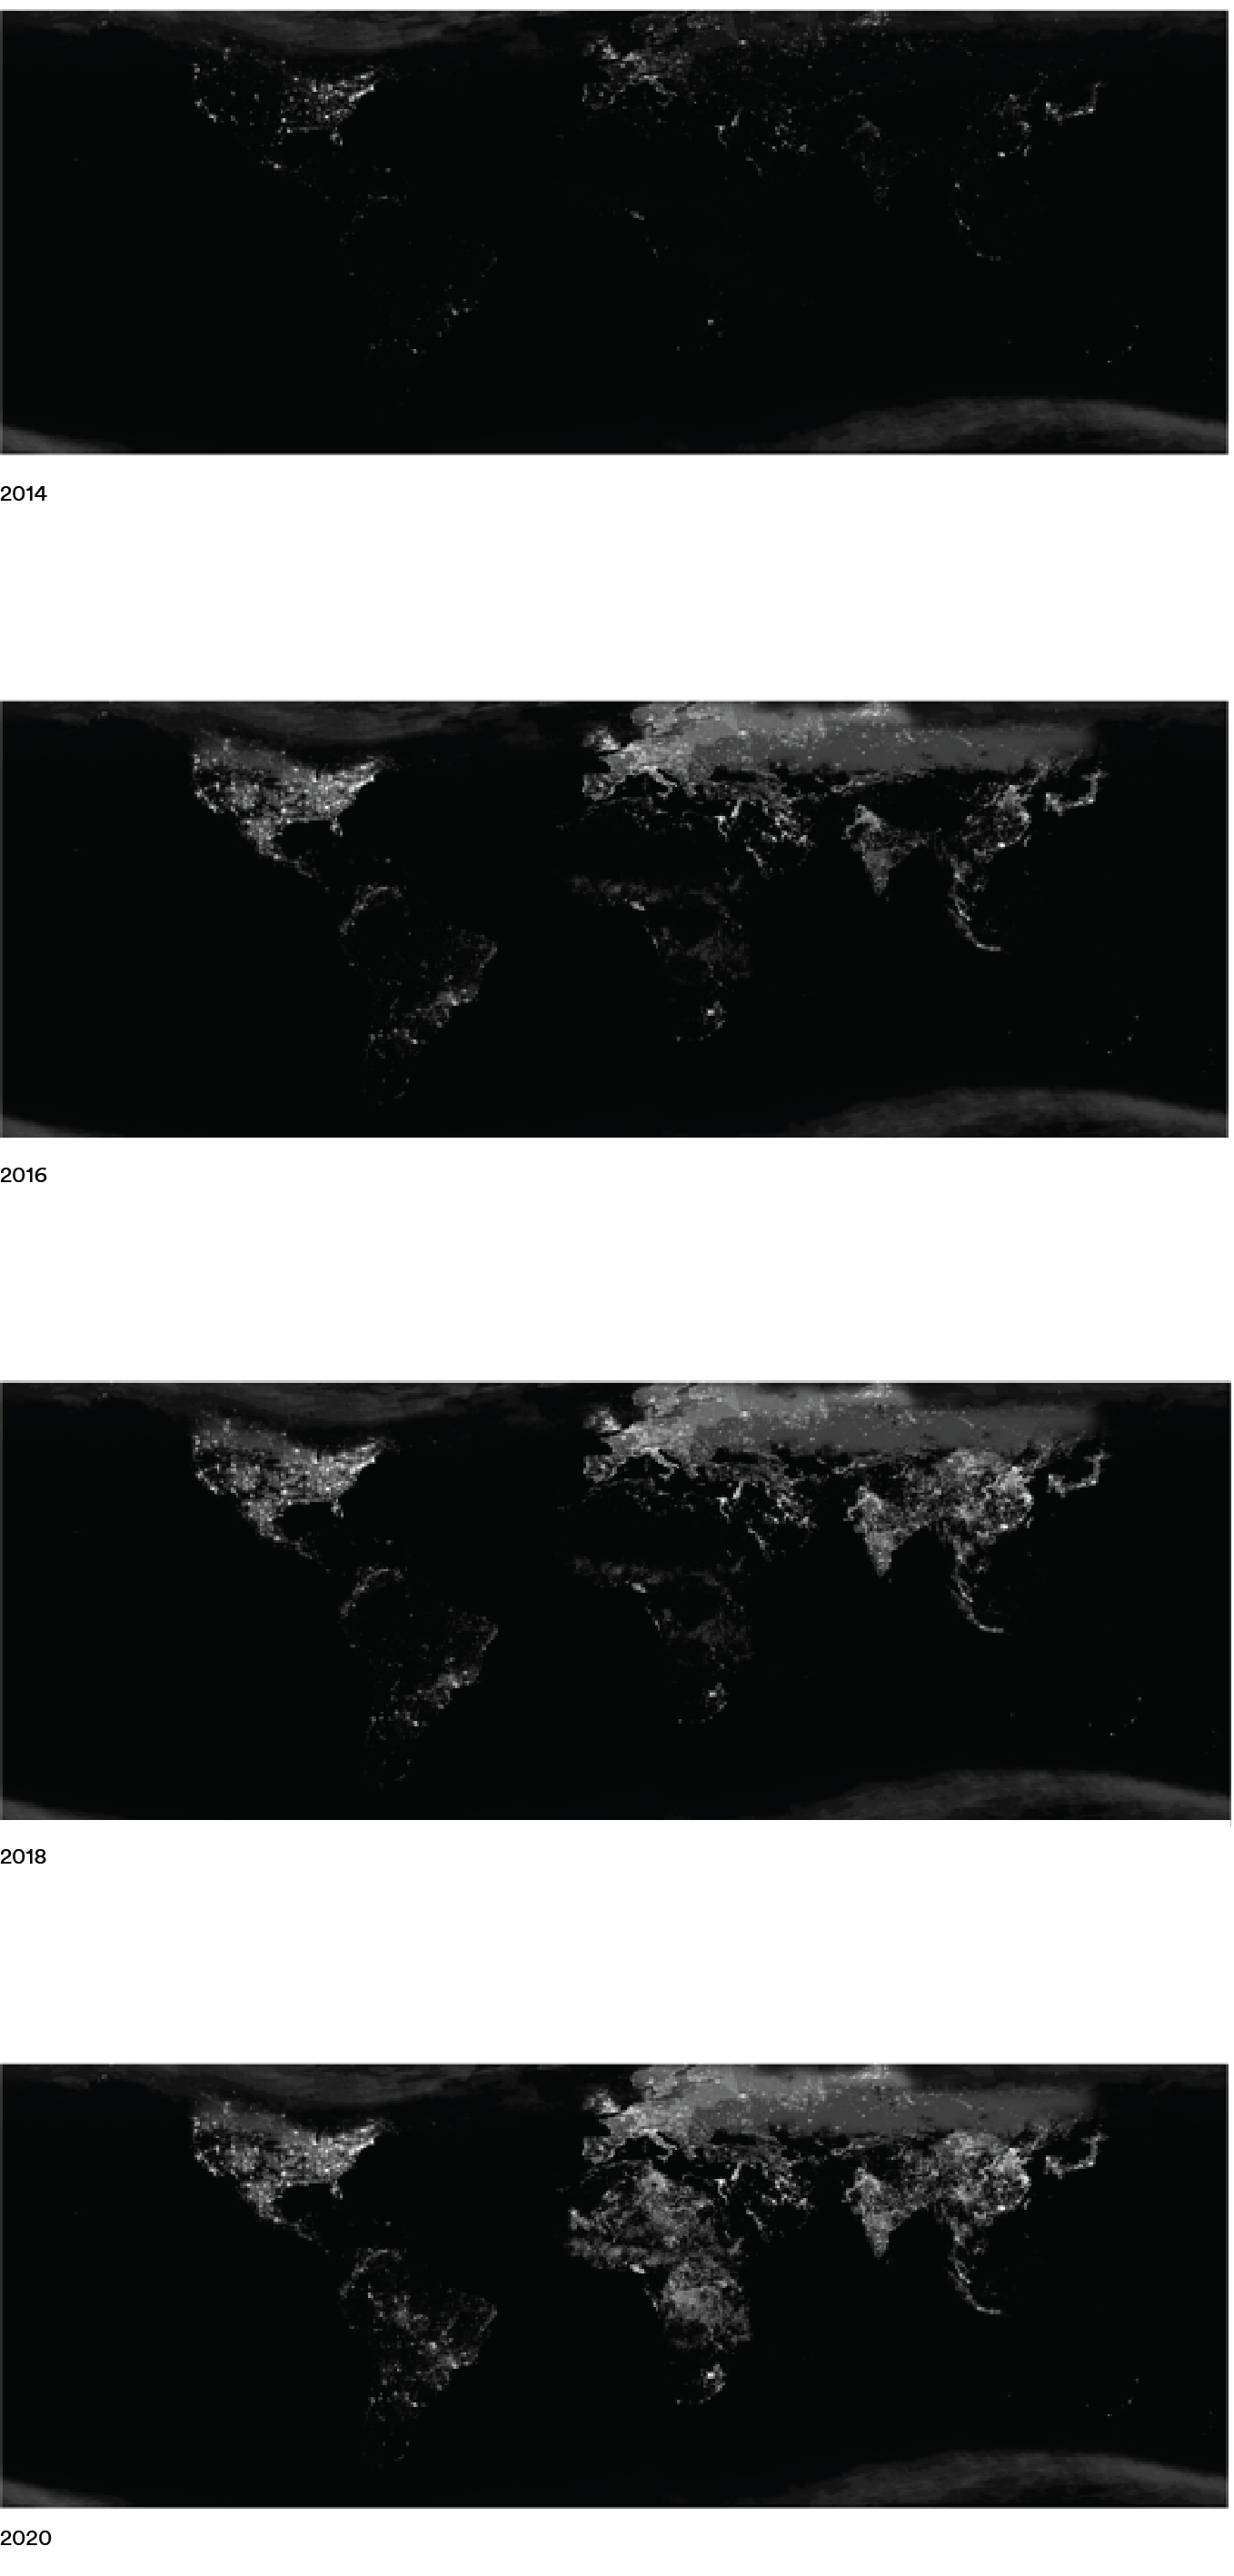 World at Night 2014-2020: Snapshots (via NOAA)